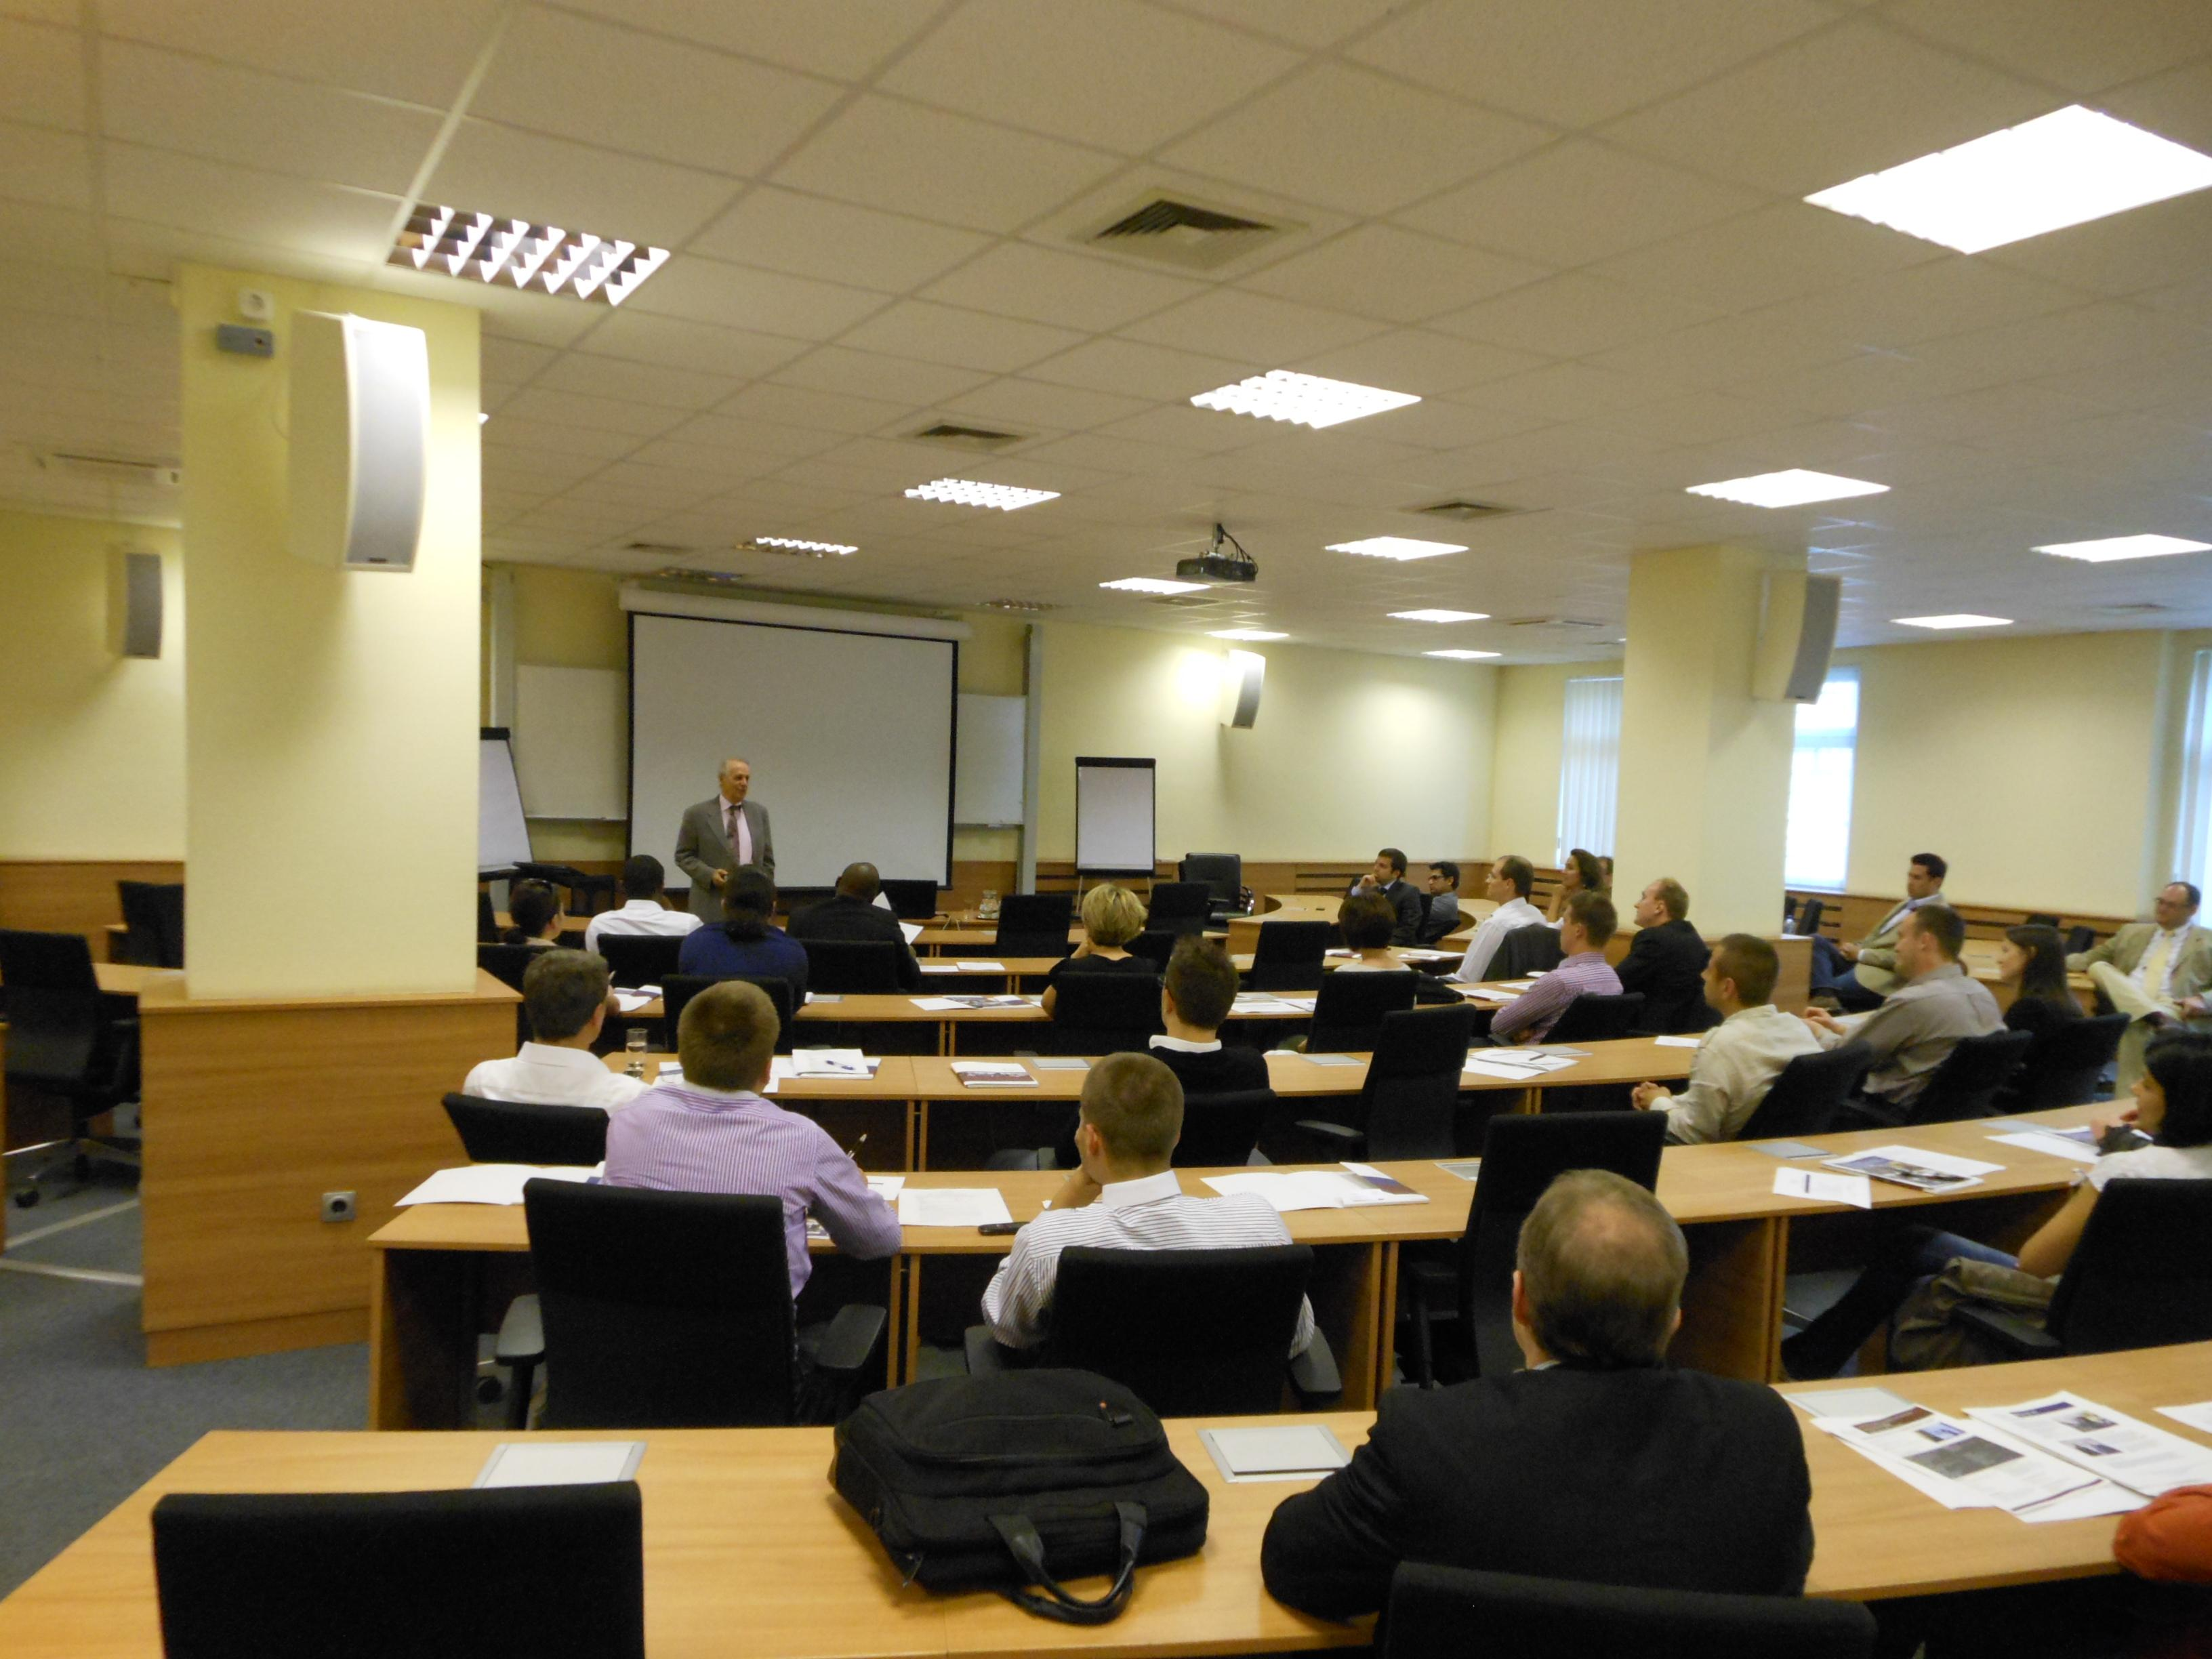 Macedonia Investment Forum, CEU Business School Budapest, 25 June